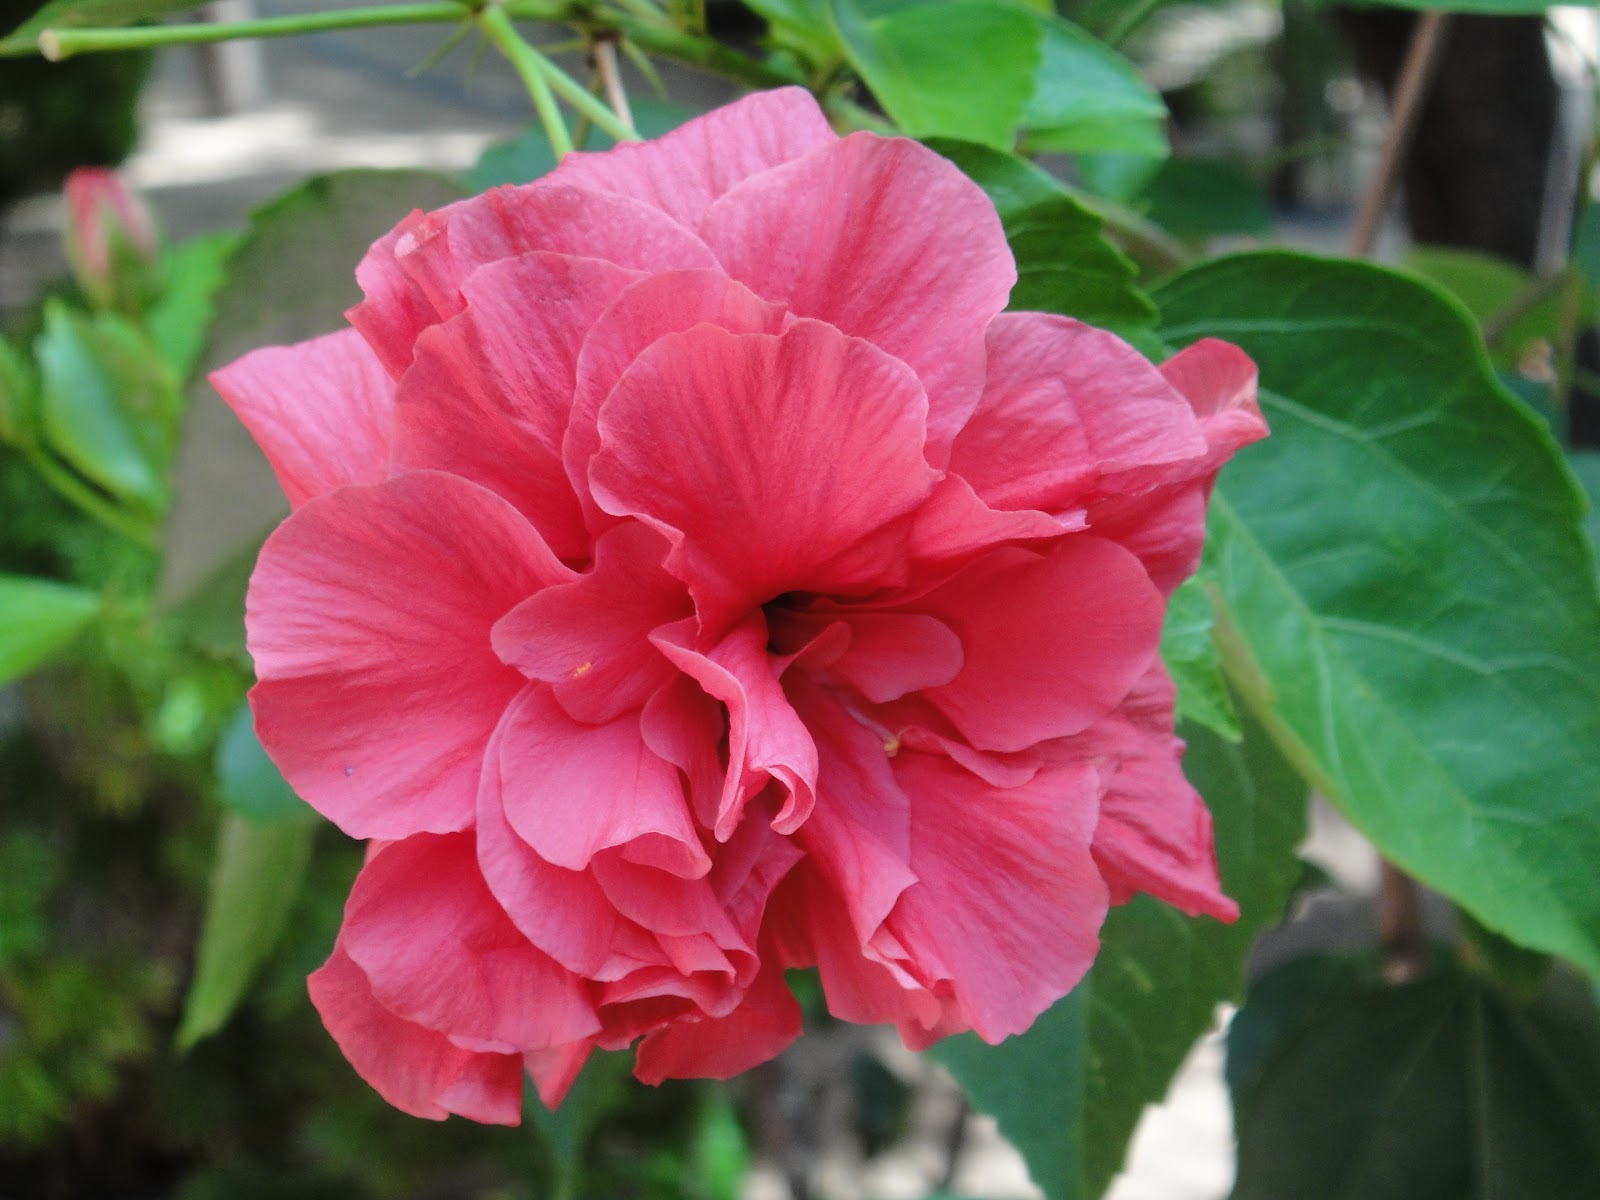 Free HD Background Images: Shoe Flower(Hibiscus flower )